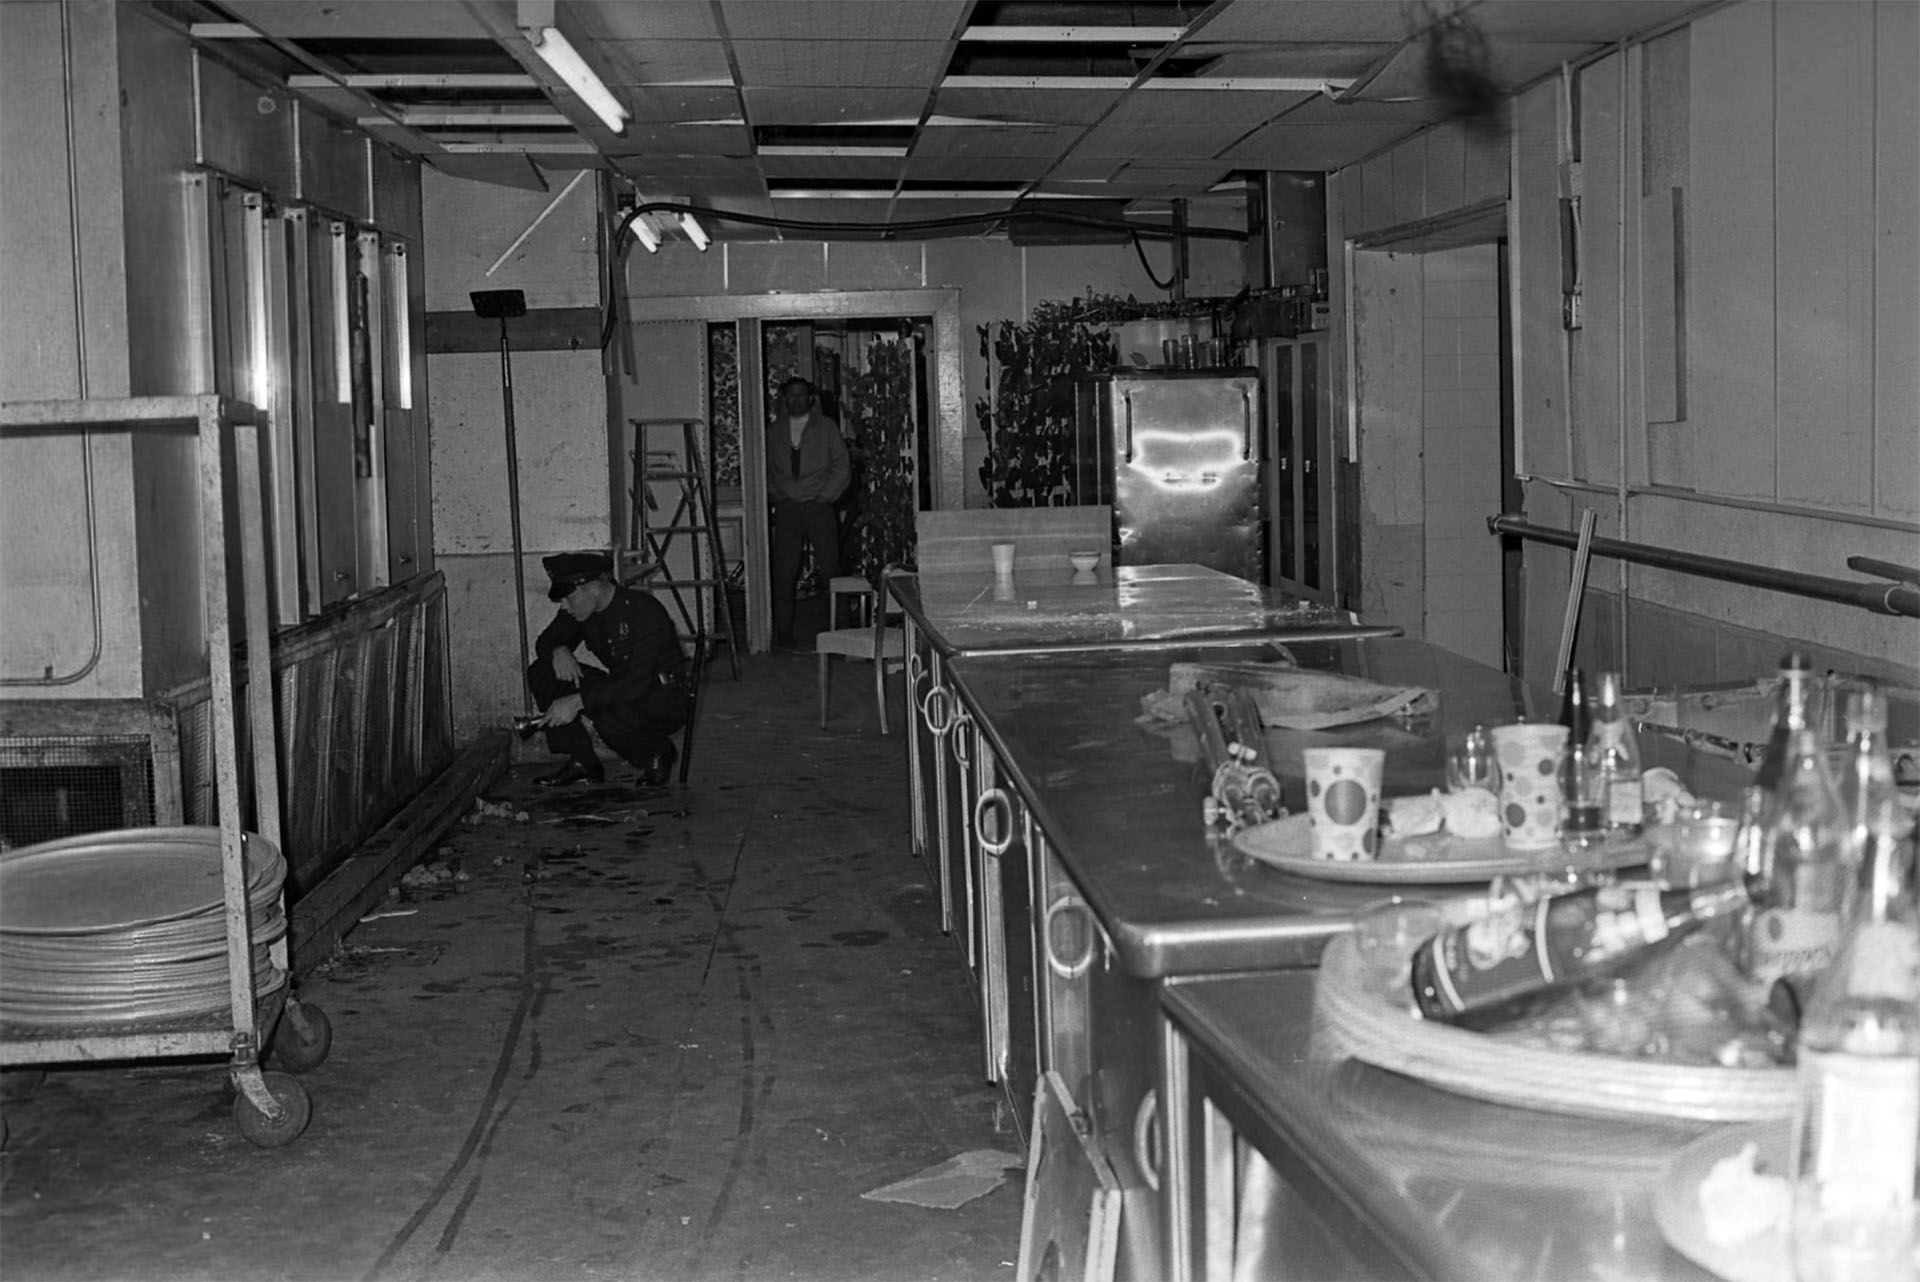 The Ambassador Hotel kitchen where Sen. Robert F. Kennedy was murdered